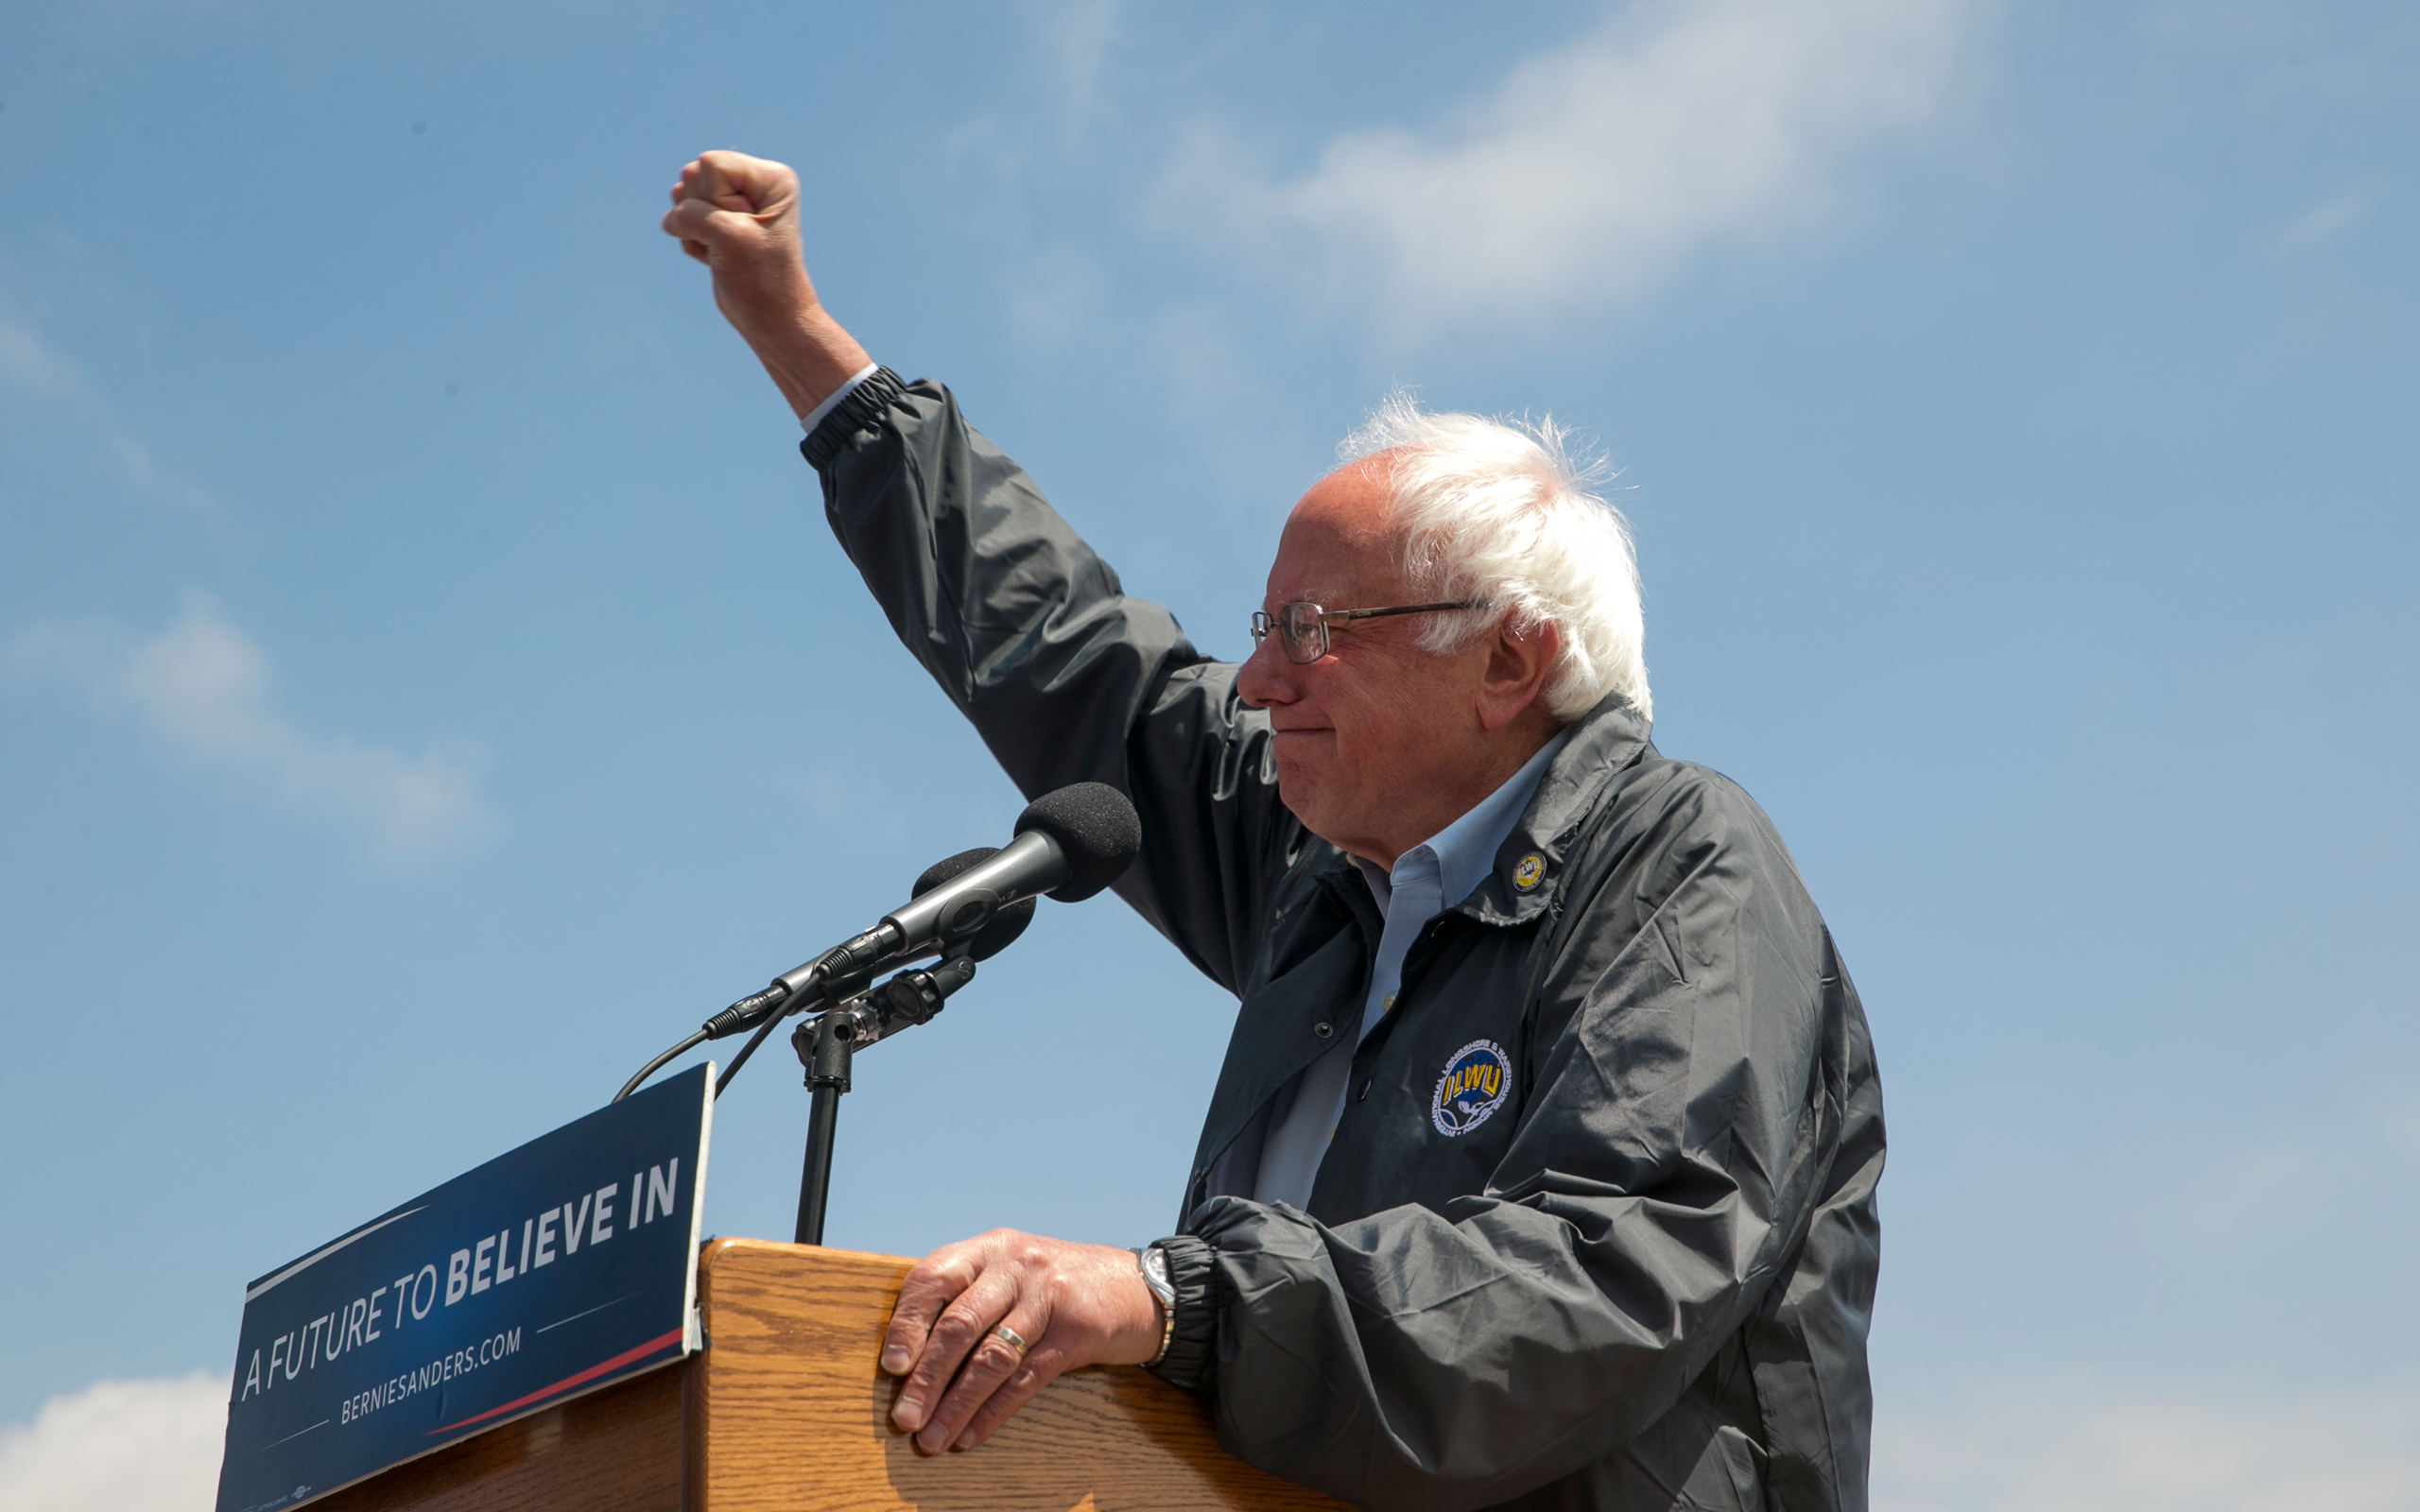 Democratic presidential candidate Sen. Bernie Sanders salutes at a campaign rally at the Los Angeles Maritime Museum in San Pedro district of Los Angeles on May 27, 2016.